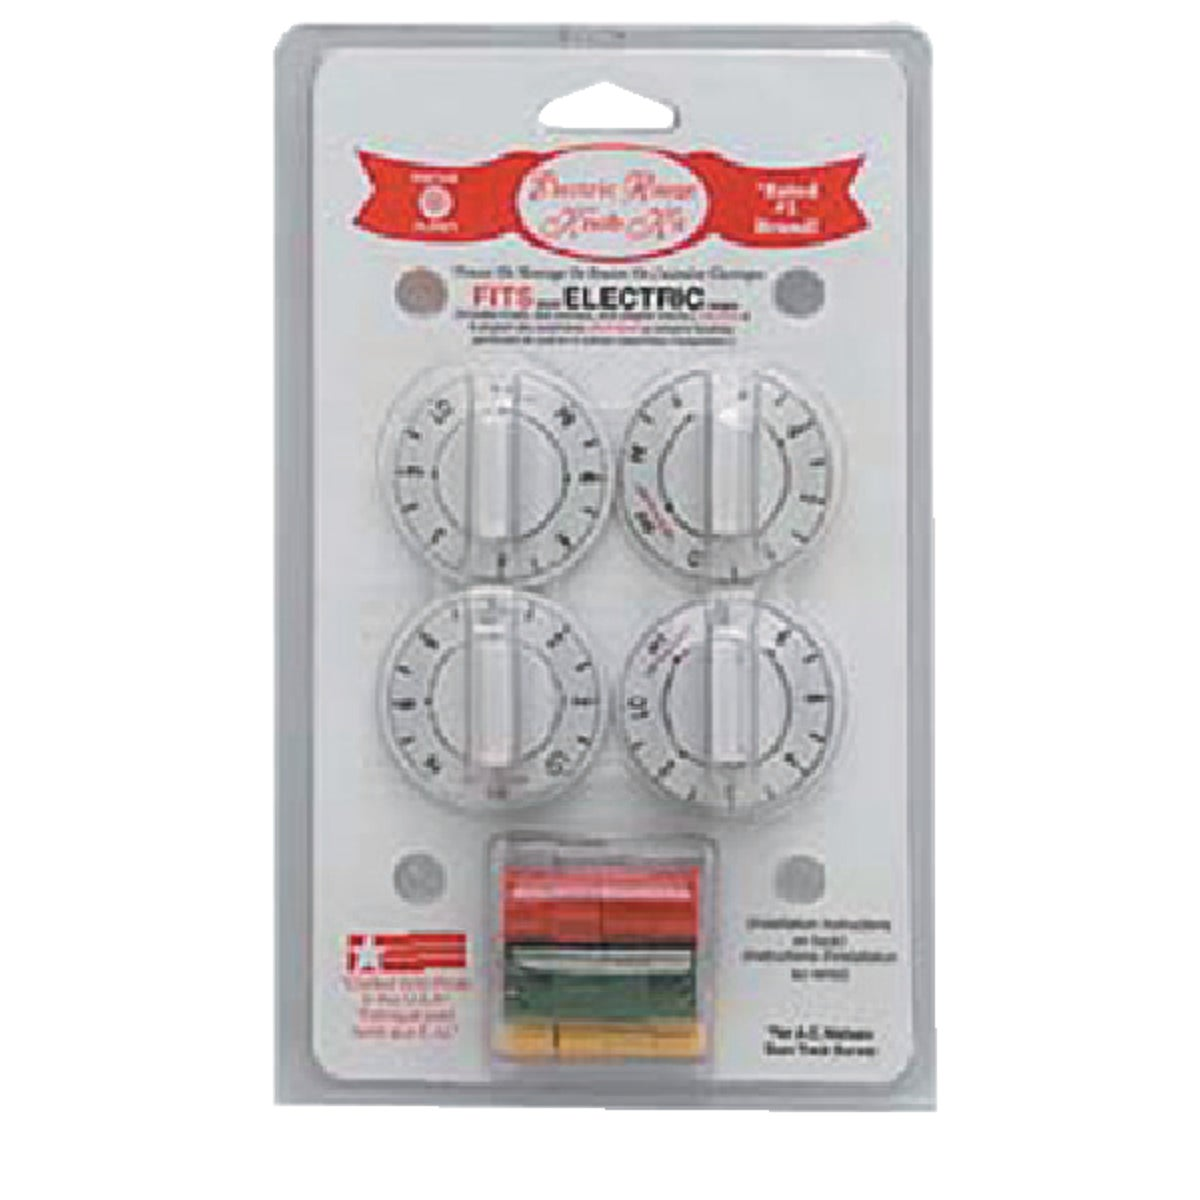 WHITE ELECTRIC KNOB KIT - 8134 by Range Kleen Mfg Inc